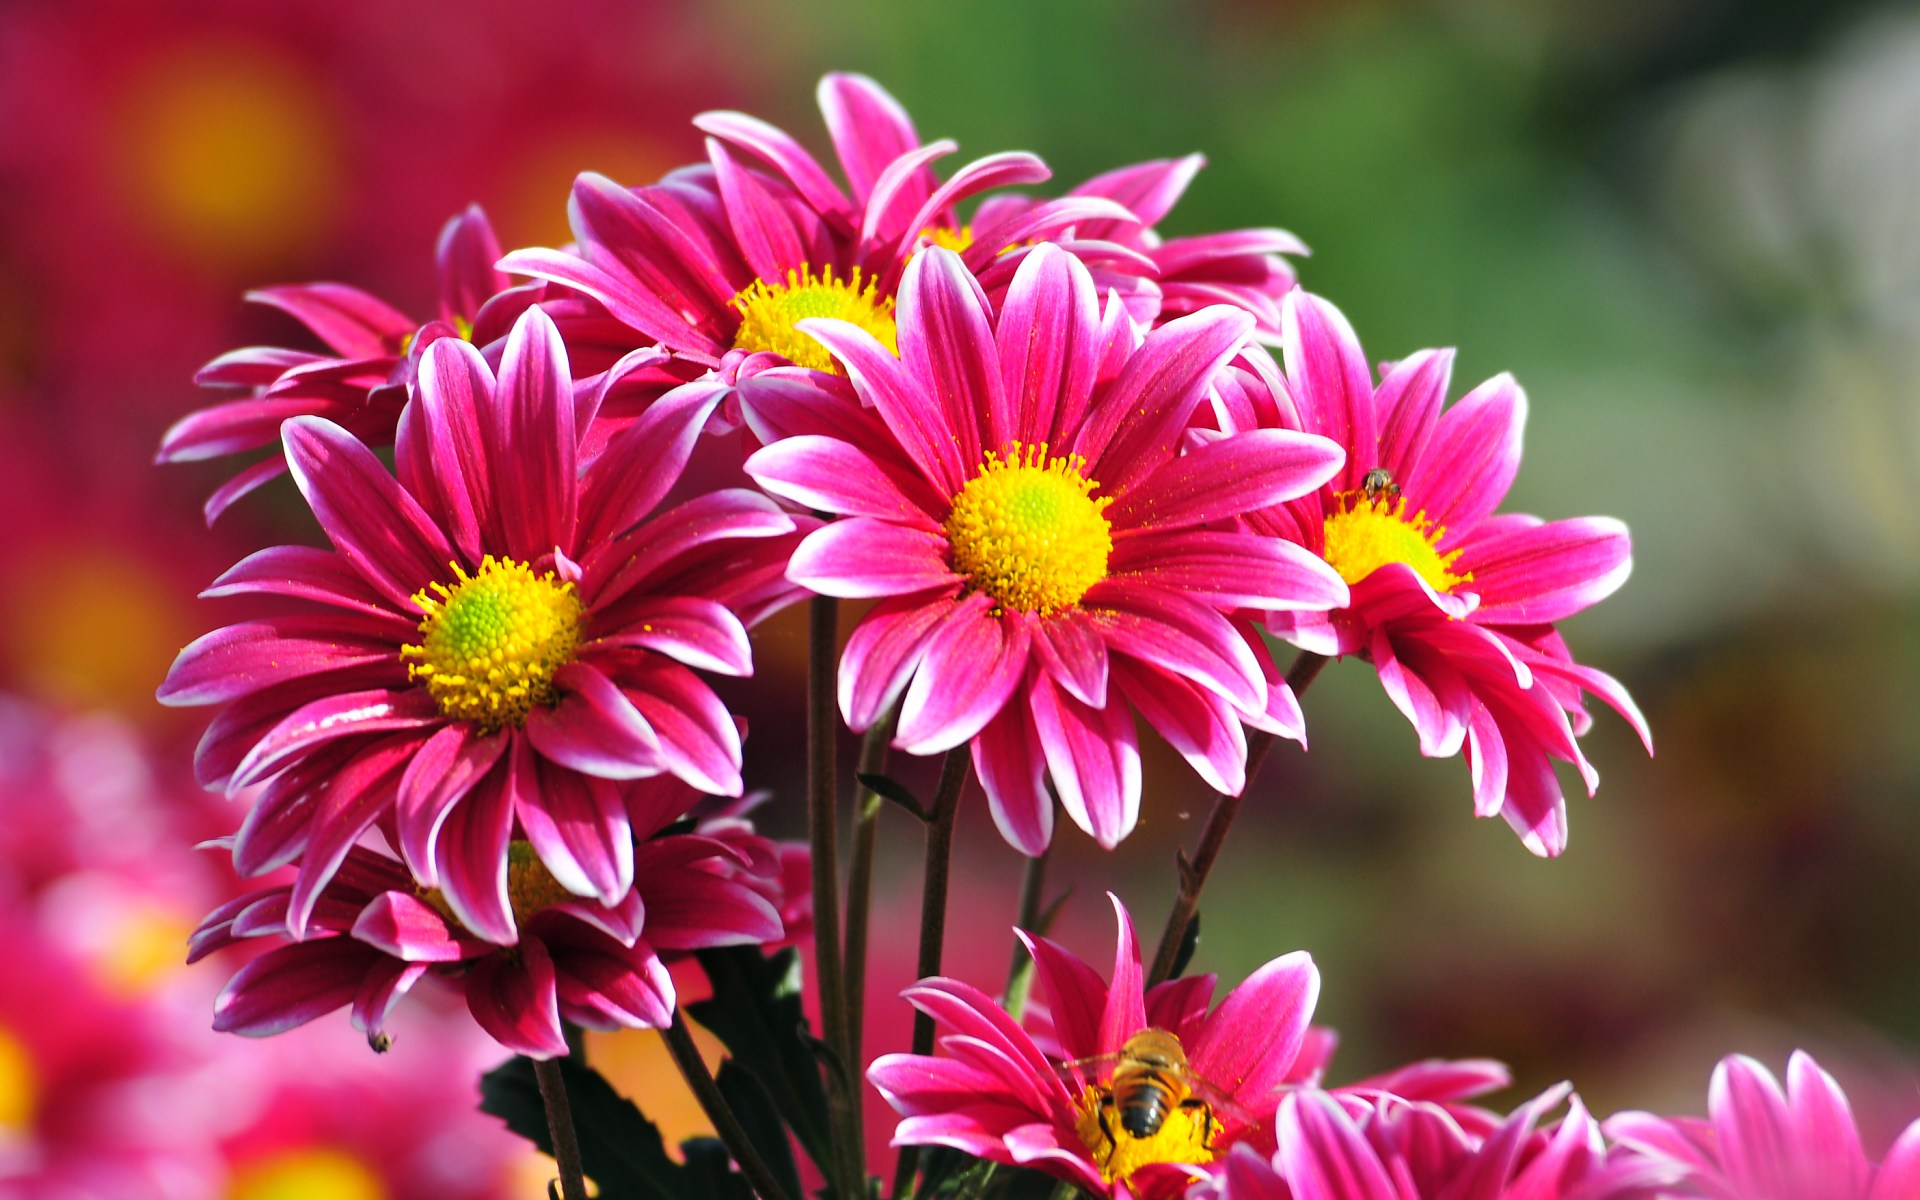 Quality Images of flowers Wallpapers, Wallpapers.